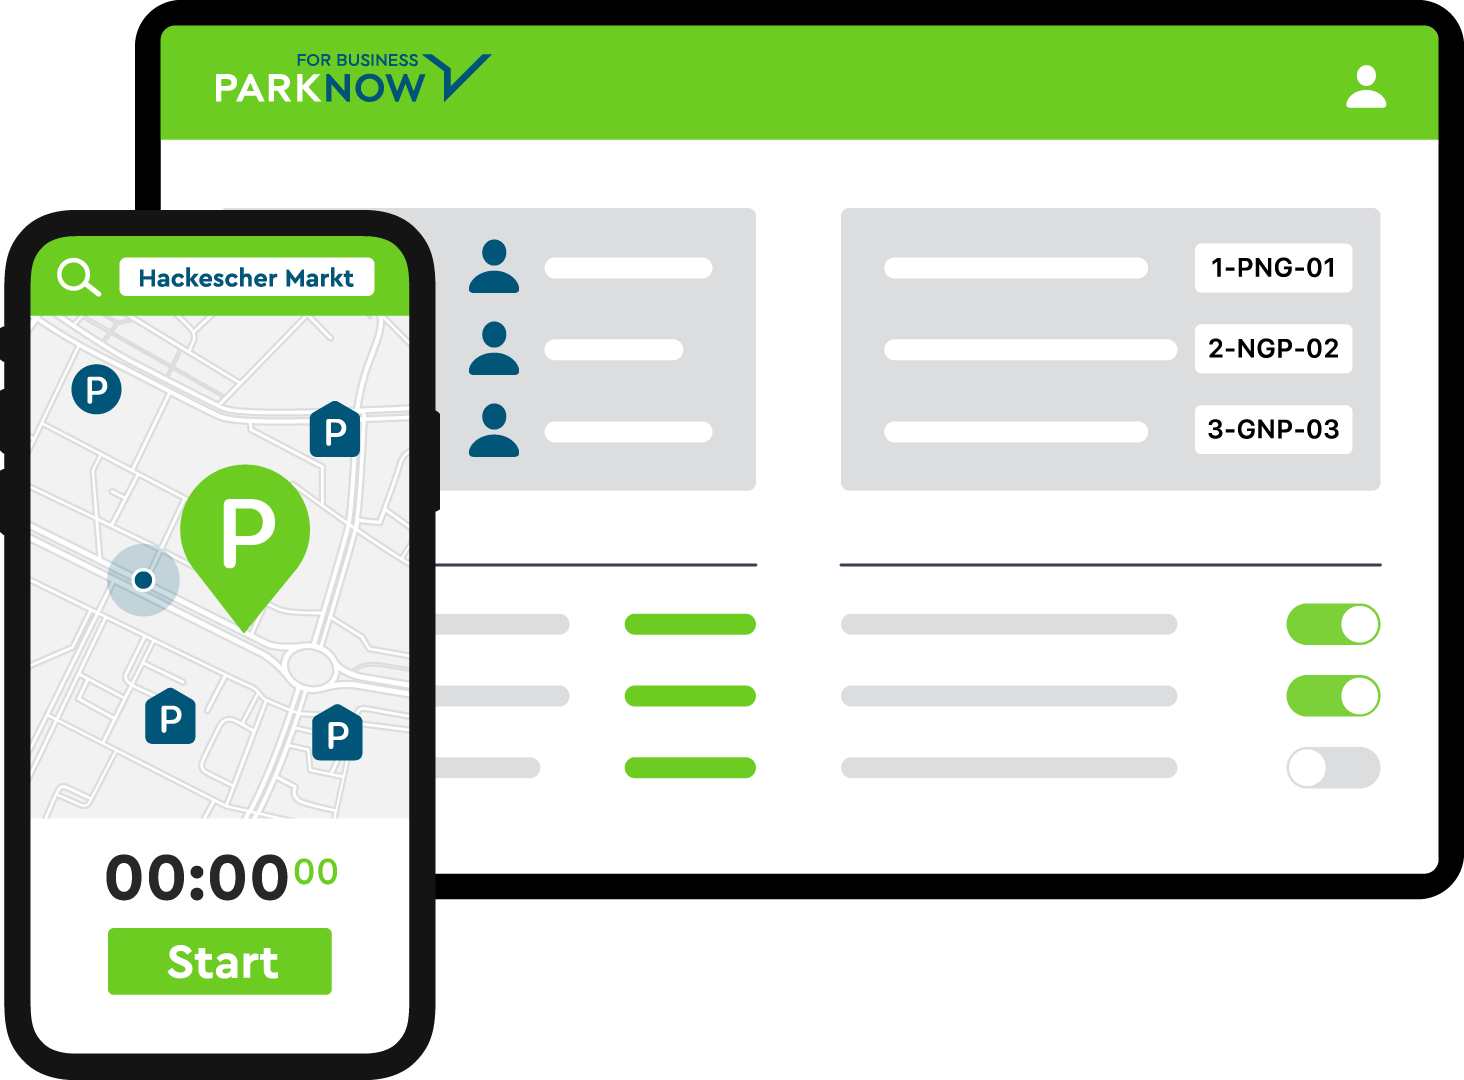 PARK NOW for Business